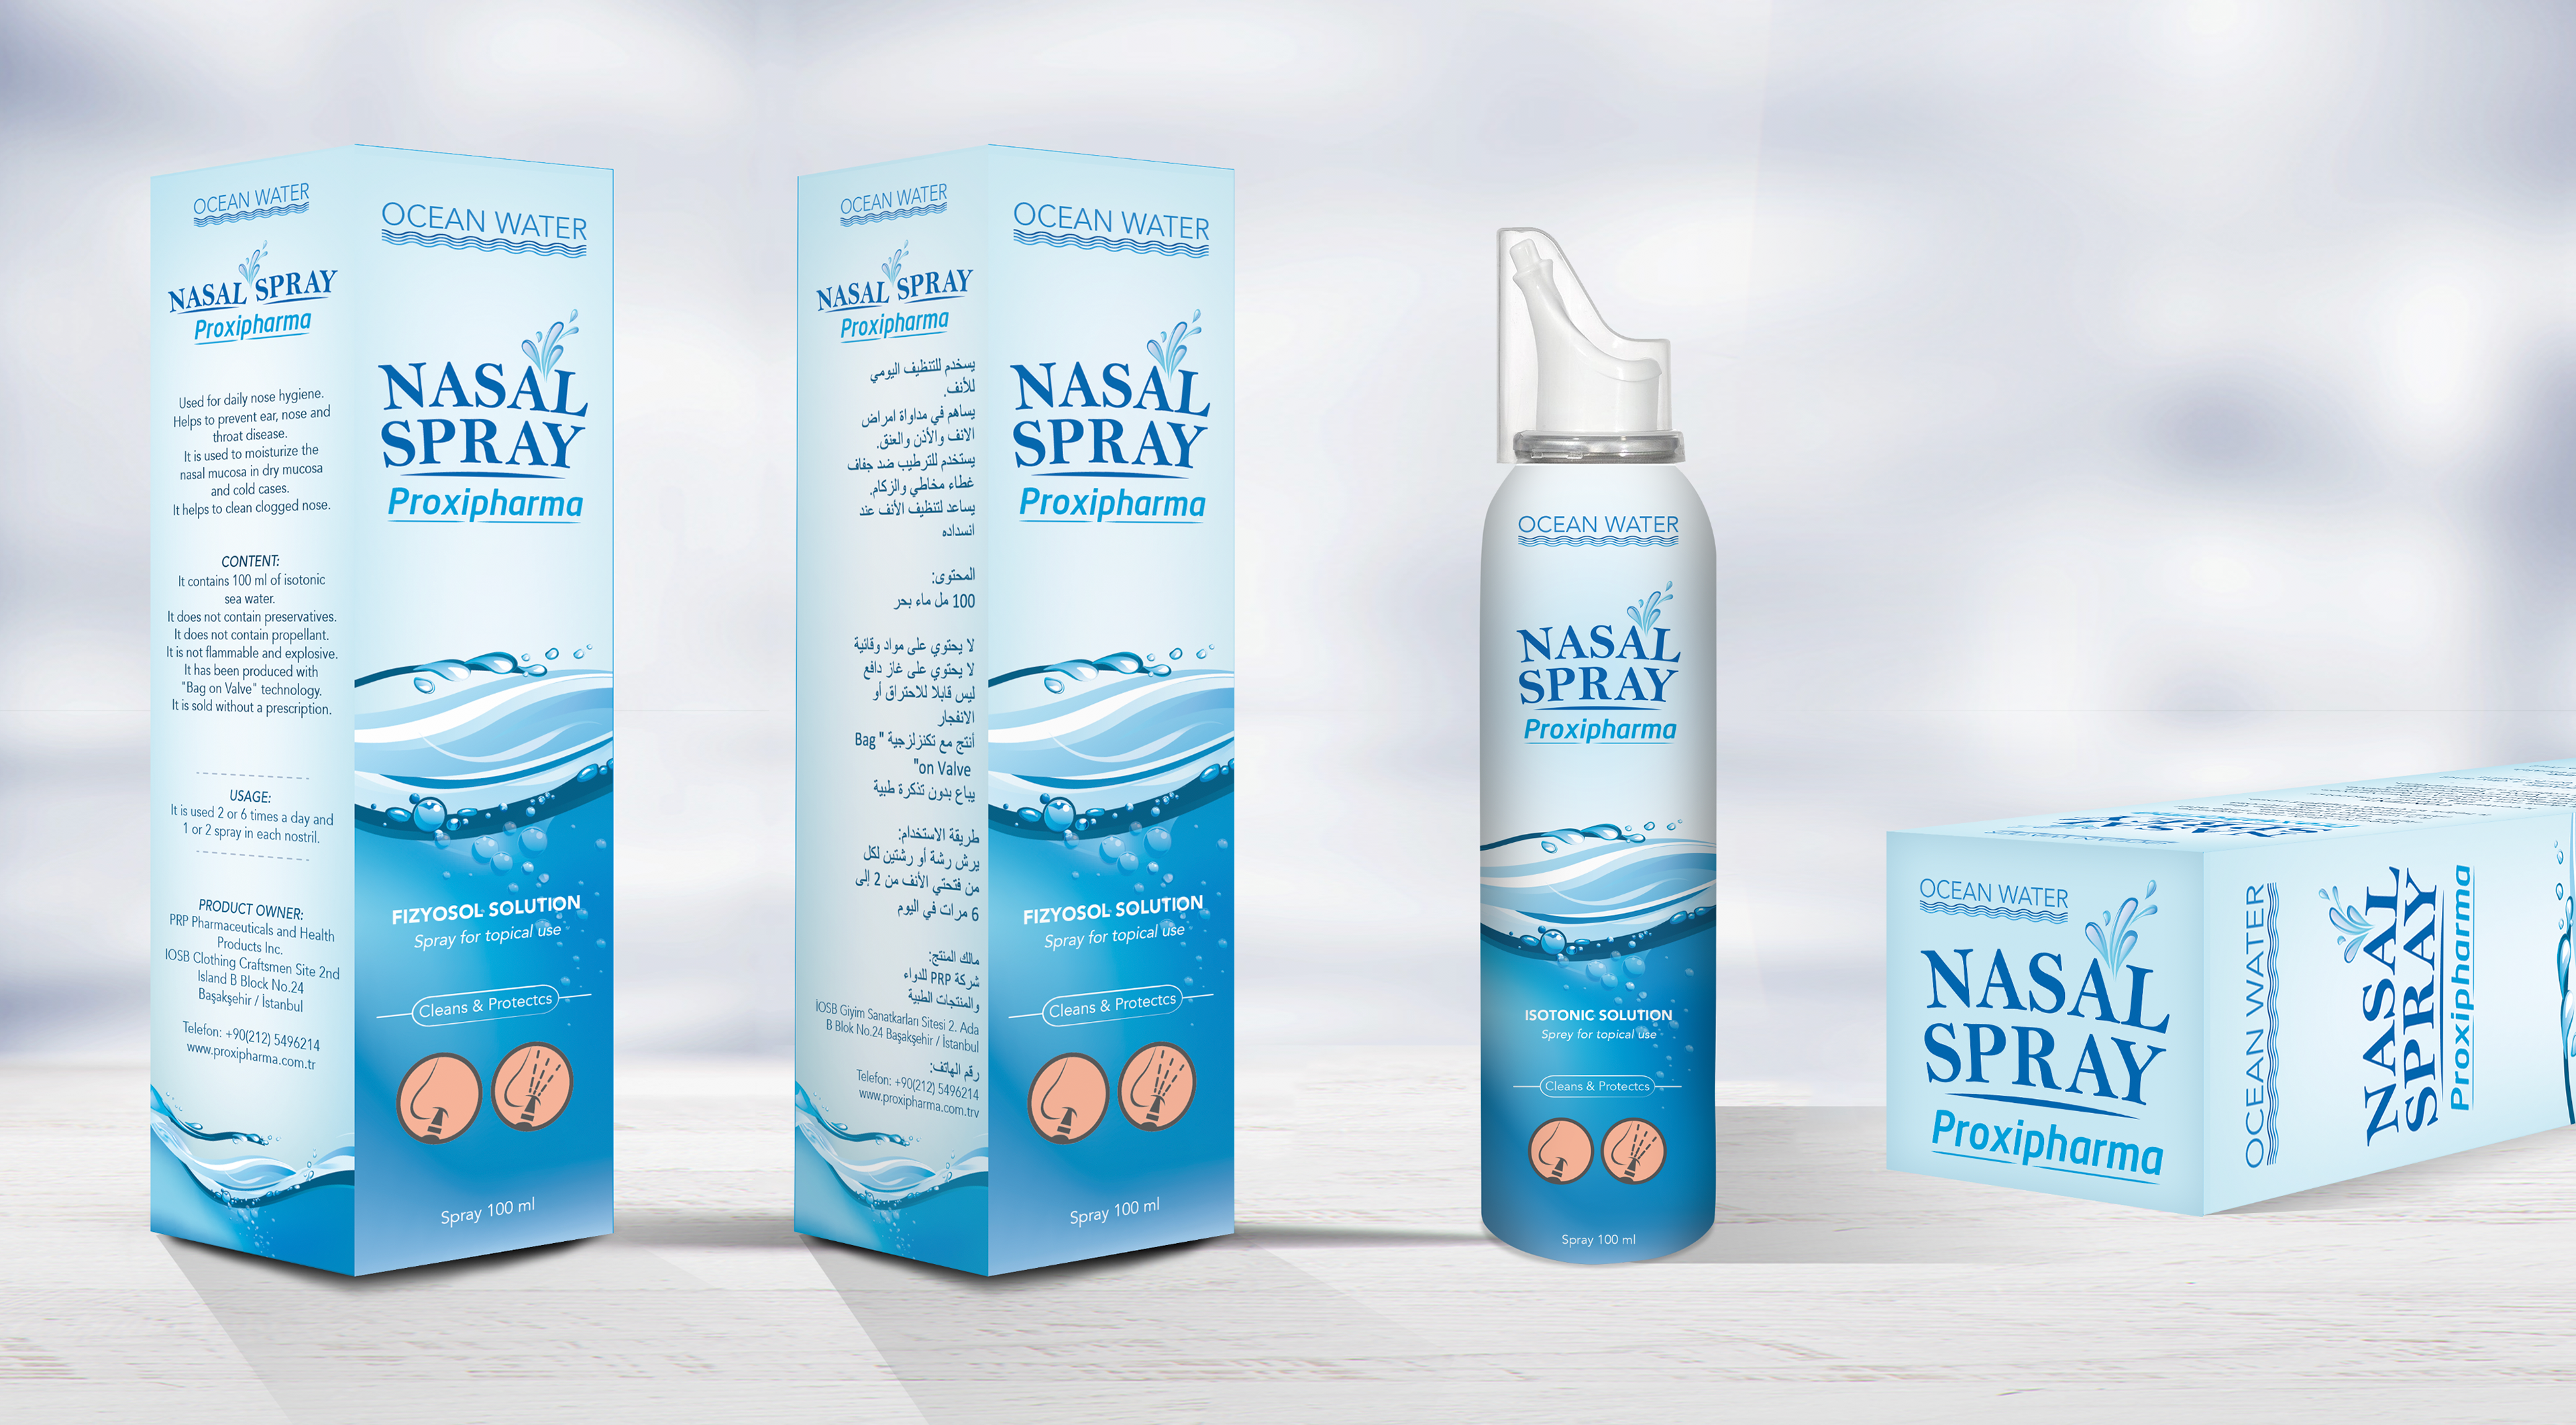 case study allegex nasal spray However, there was one allergy nasal spray that i think worked best for me and that was nasacort i am not using nasacort anymore because i have learned about the root causes of allergies and about gentle, natural treatments that can ease symptoms without.